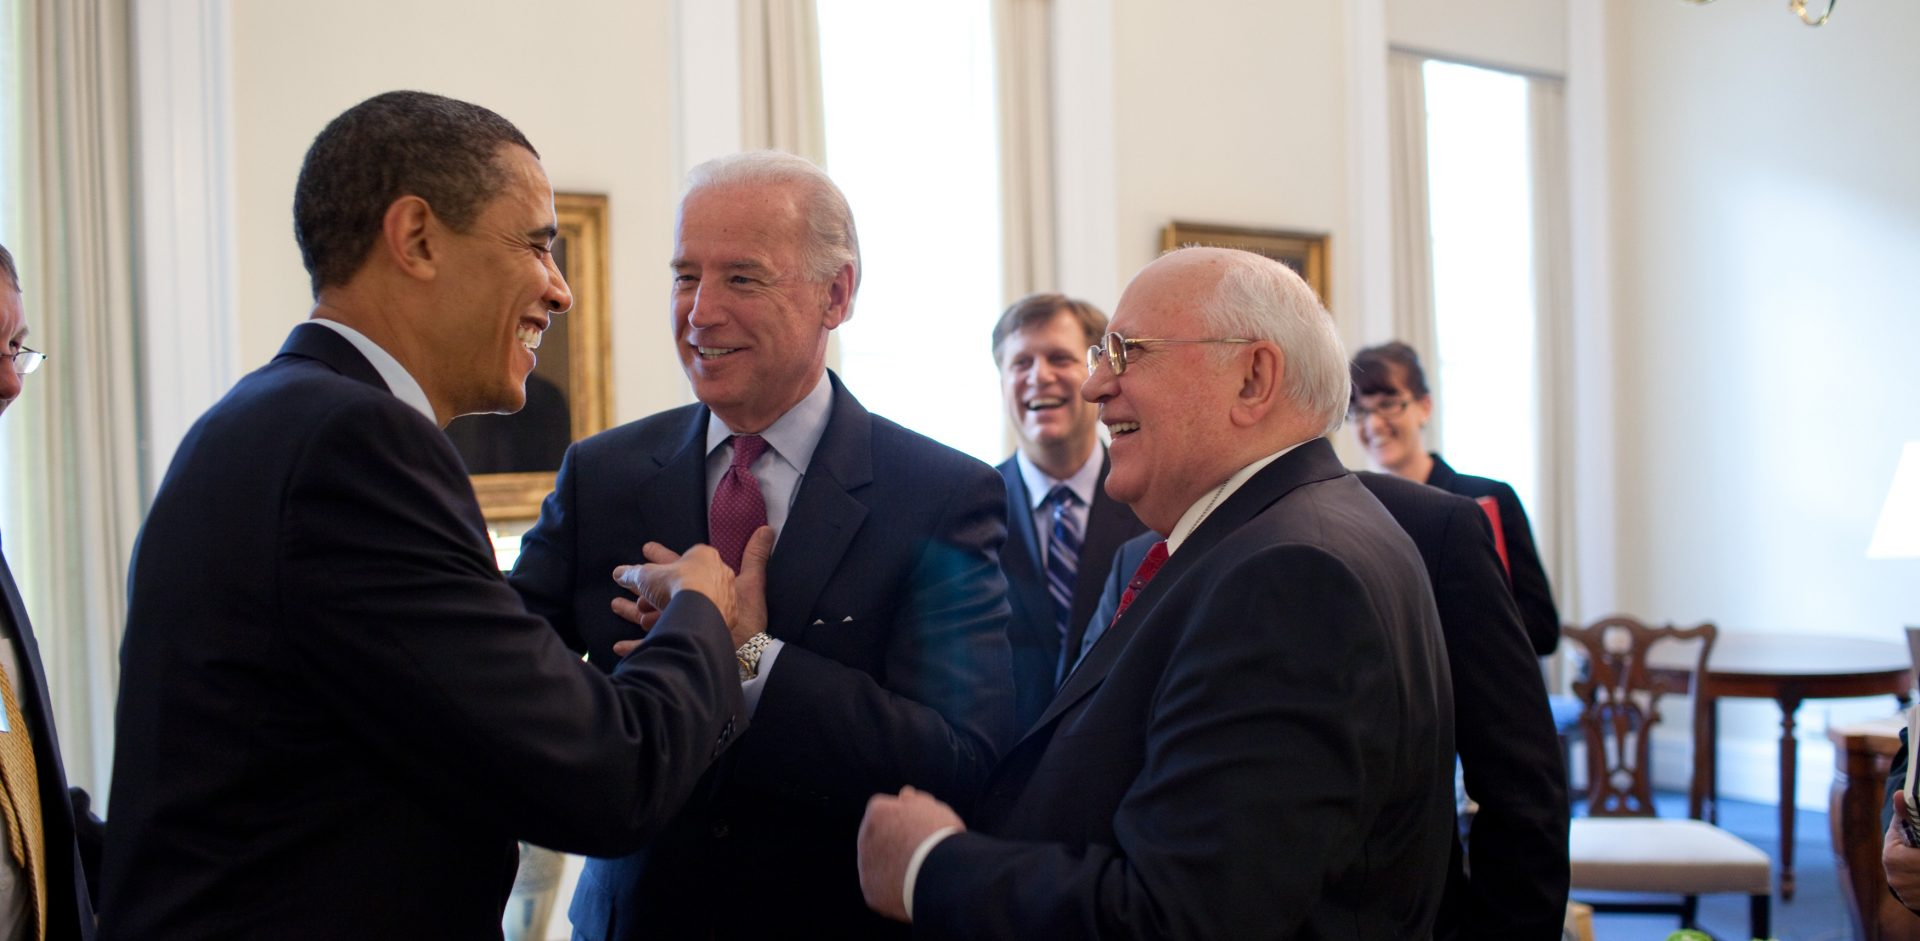 Barack Obama  Joe Biden with Mikhail Gorbachev 3 20.09 e1465196598250